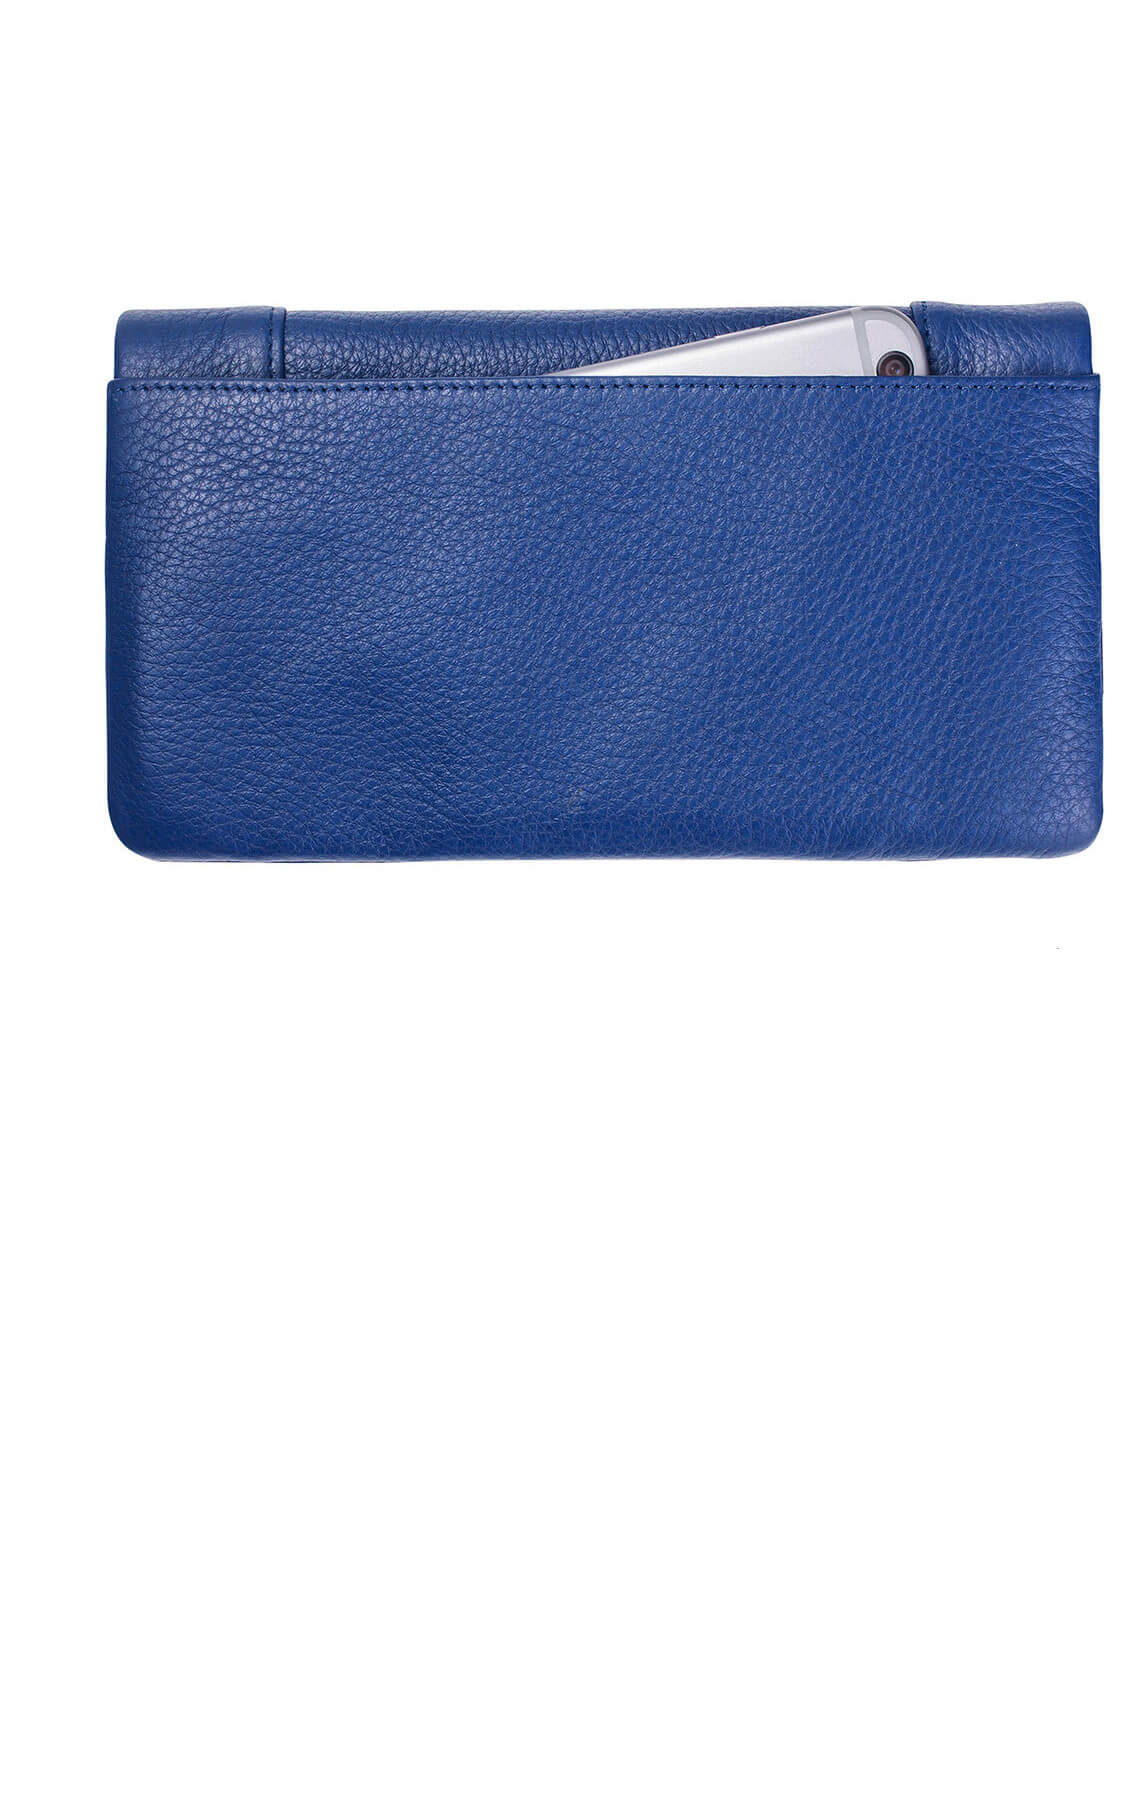 status anxiety some type of love wallet blue